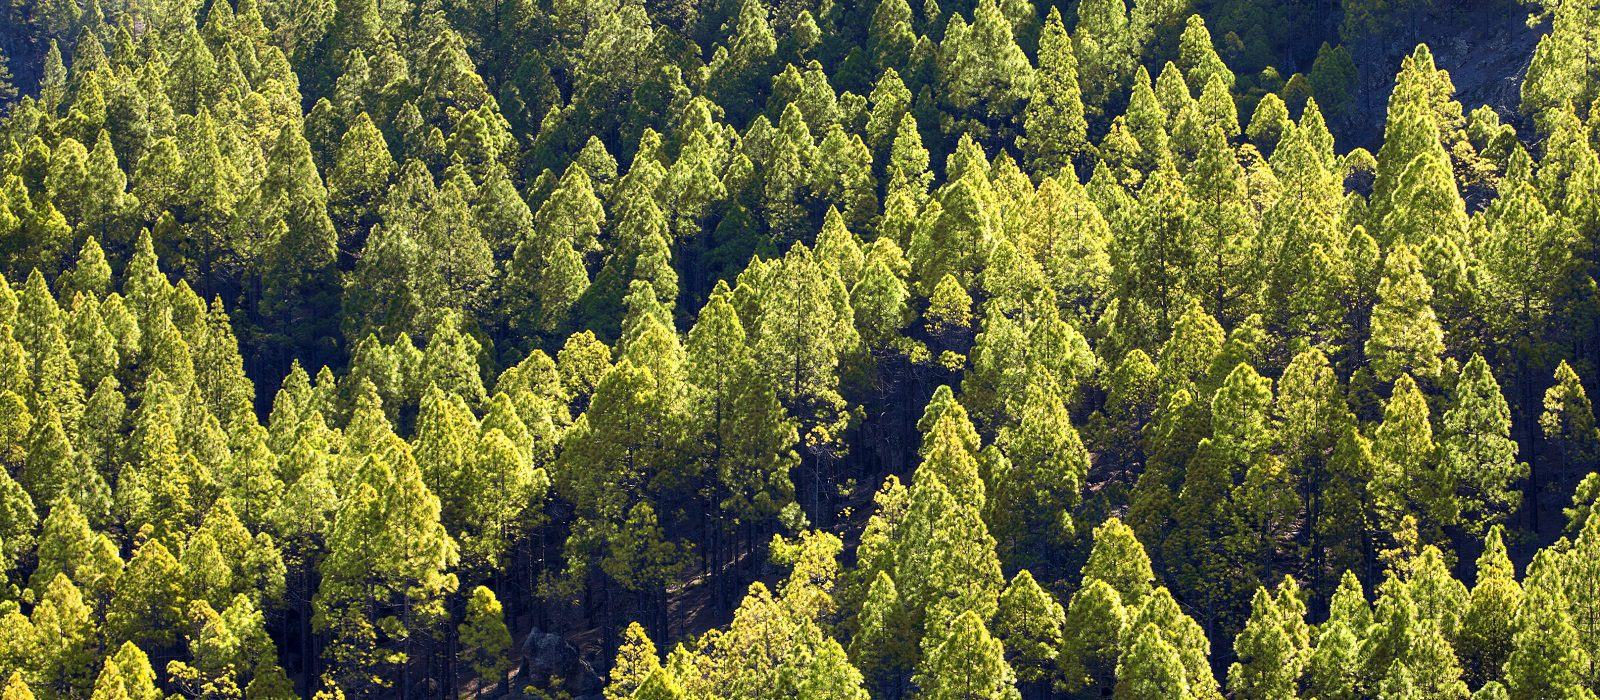 Gran Canaria, slopes leading to Roque Nublo reforested a few decades ago, Canary pines all the same age, shape and size